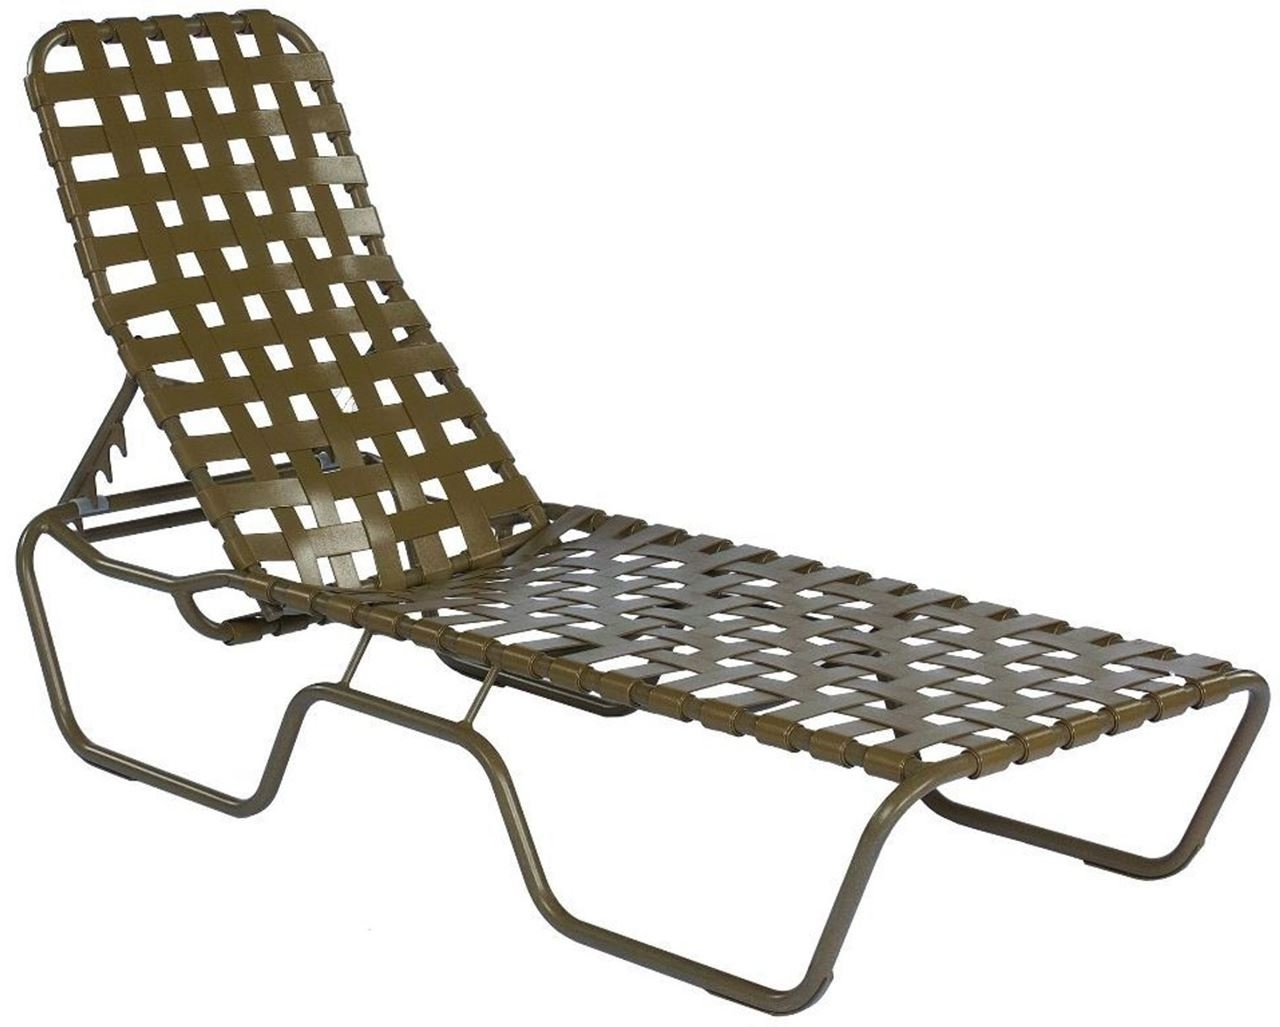 Commercial Grade Outdoor Chaise Lounge Chairs Within Most Up To Date Commercial Basketweave Strap Chaise Lounge Sanibel Stacking (View 5 of 15)